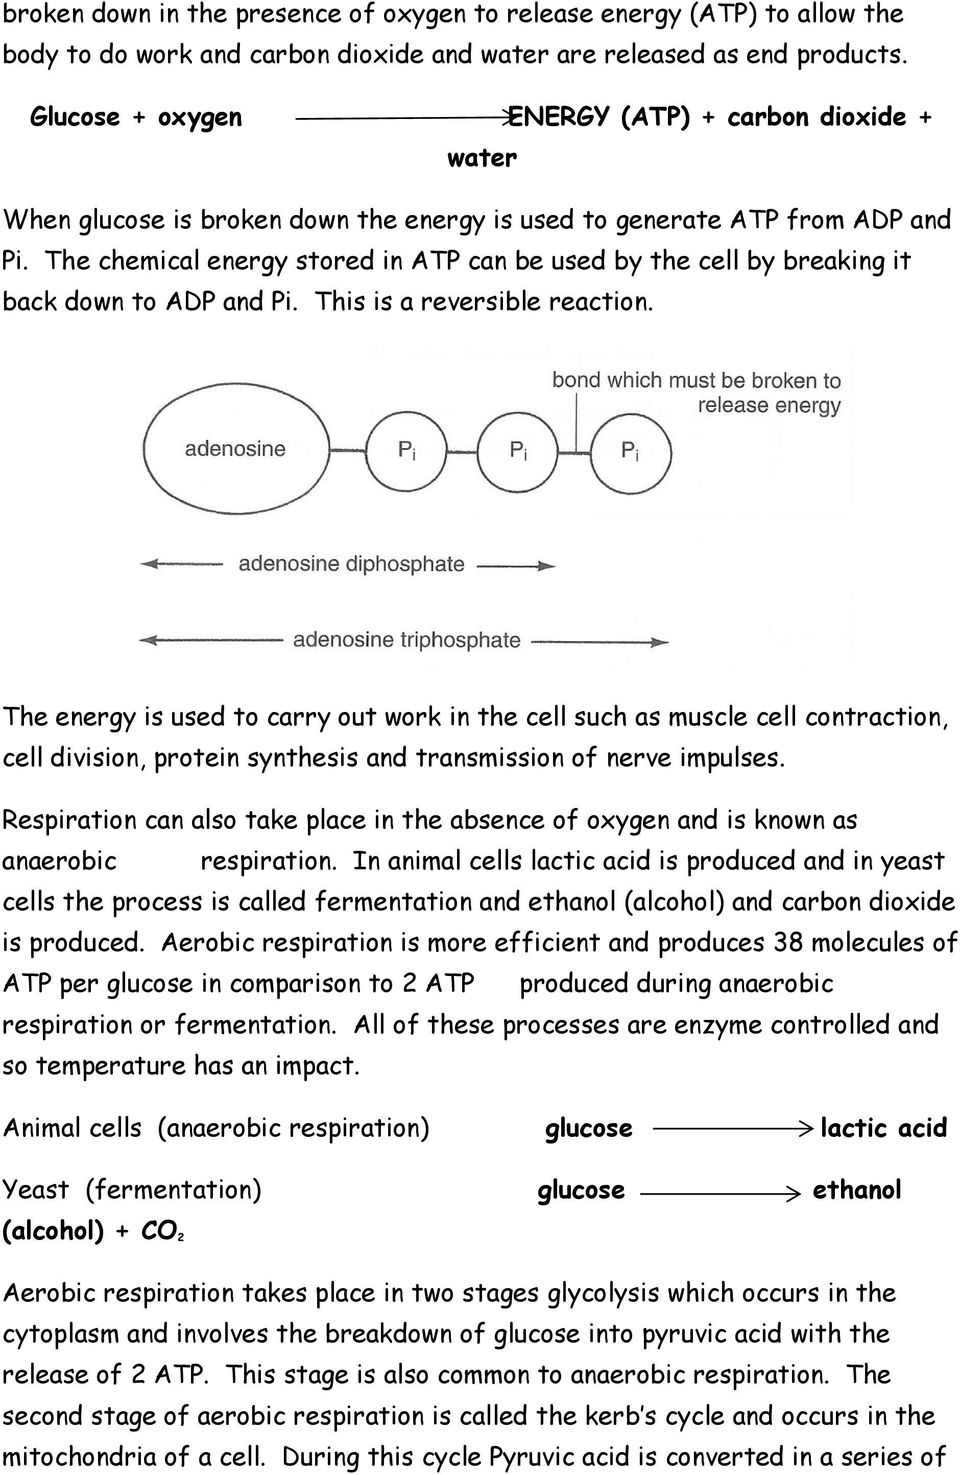 The chemical energy stored in ATP can be used by the cell by breaking it back down to ADP and Pi. This is a reversible reaction.